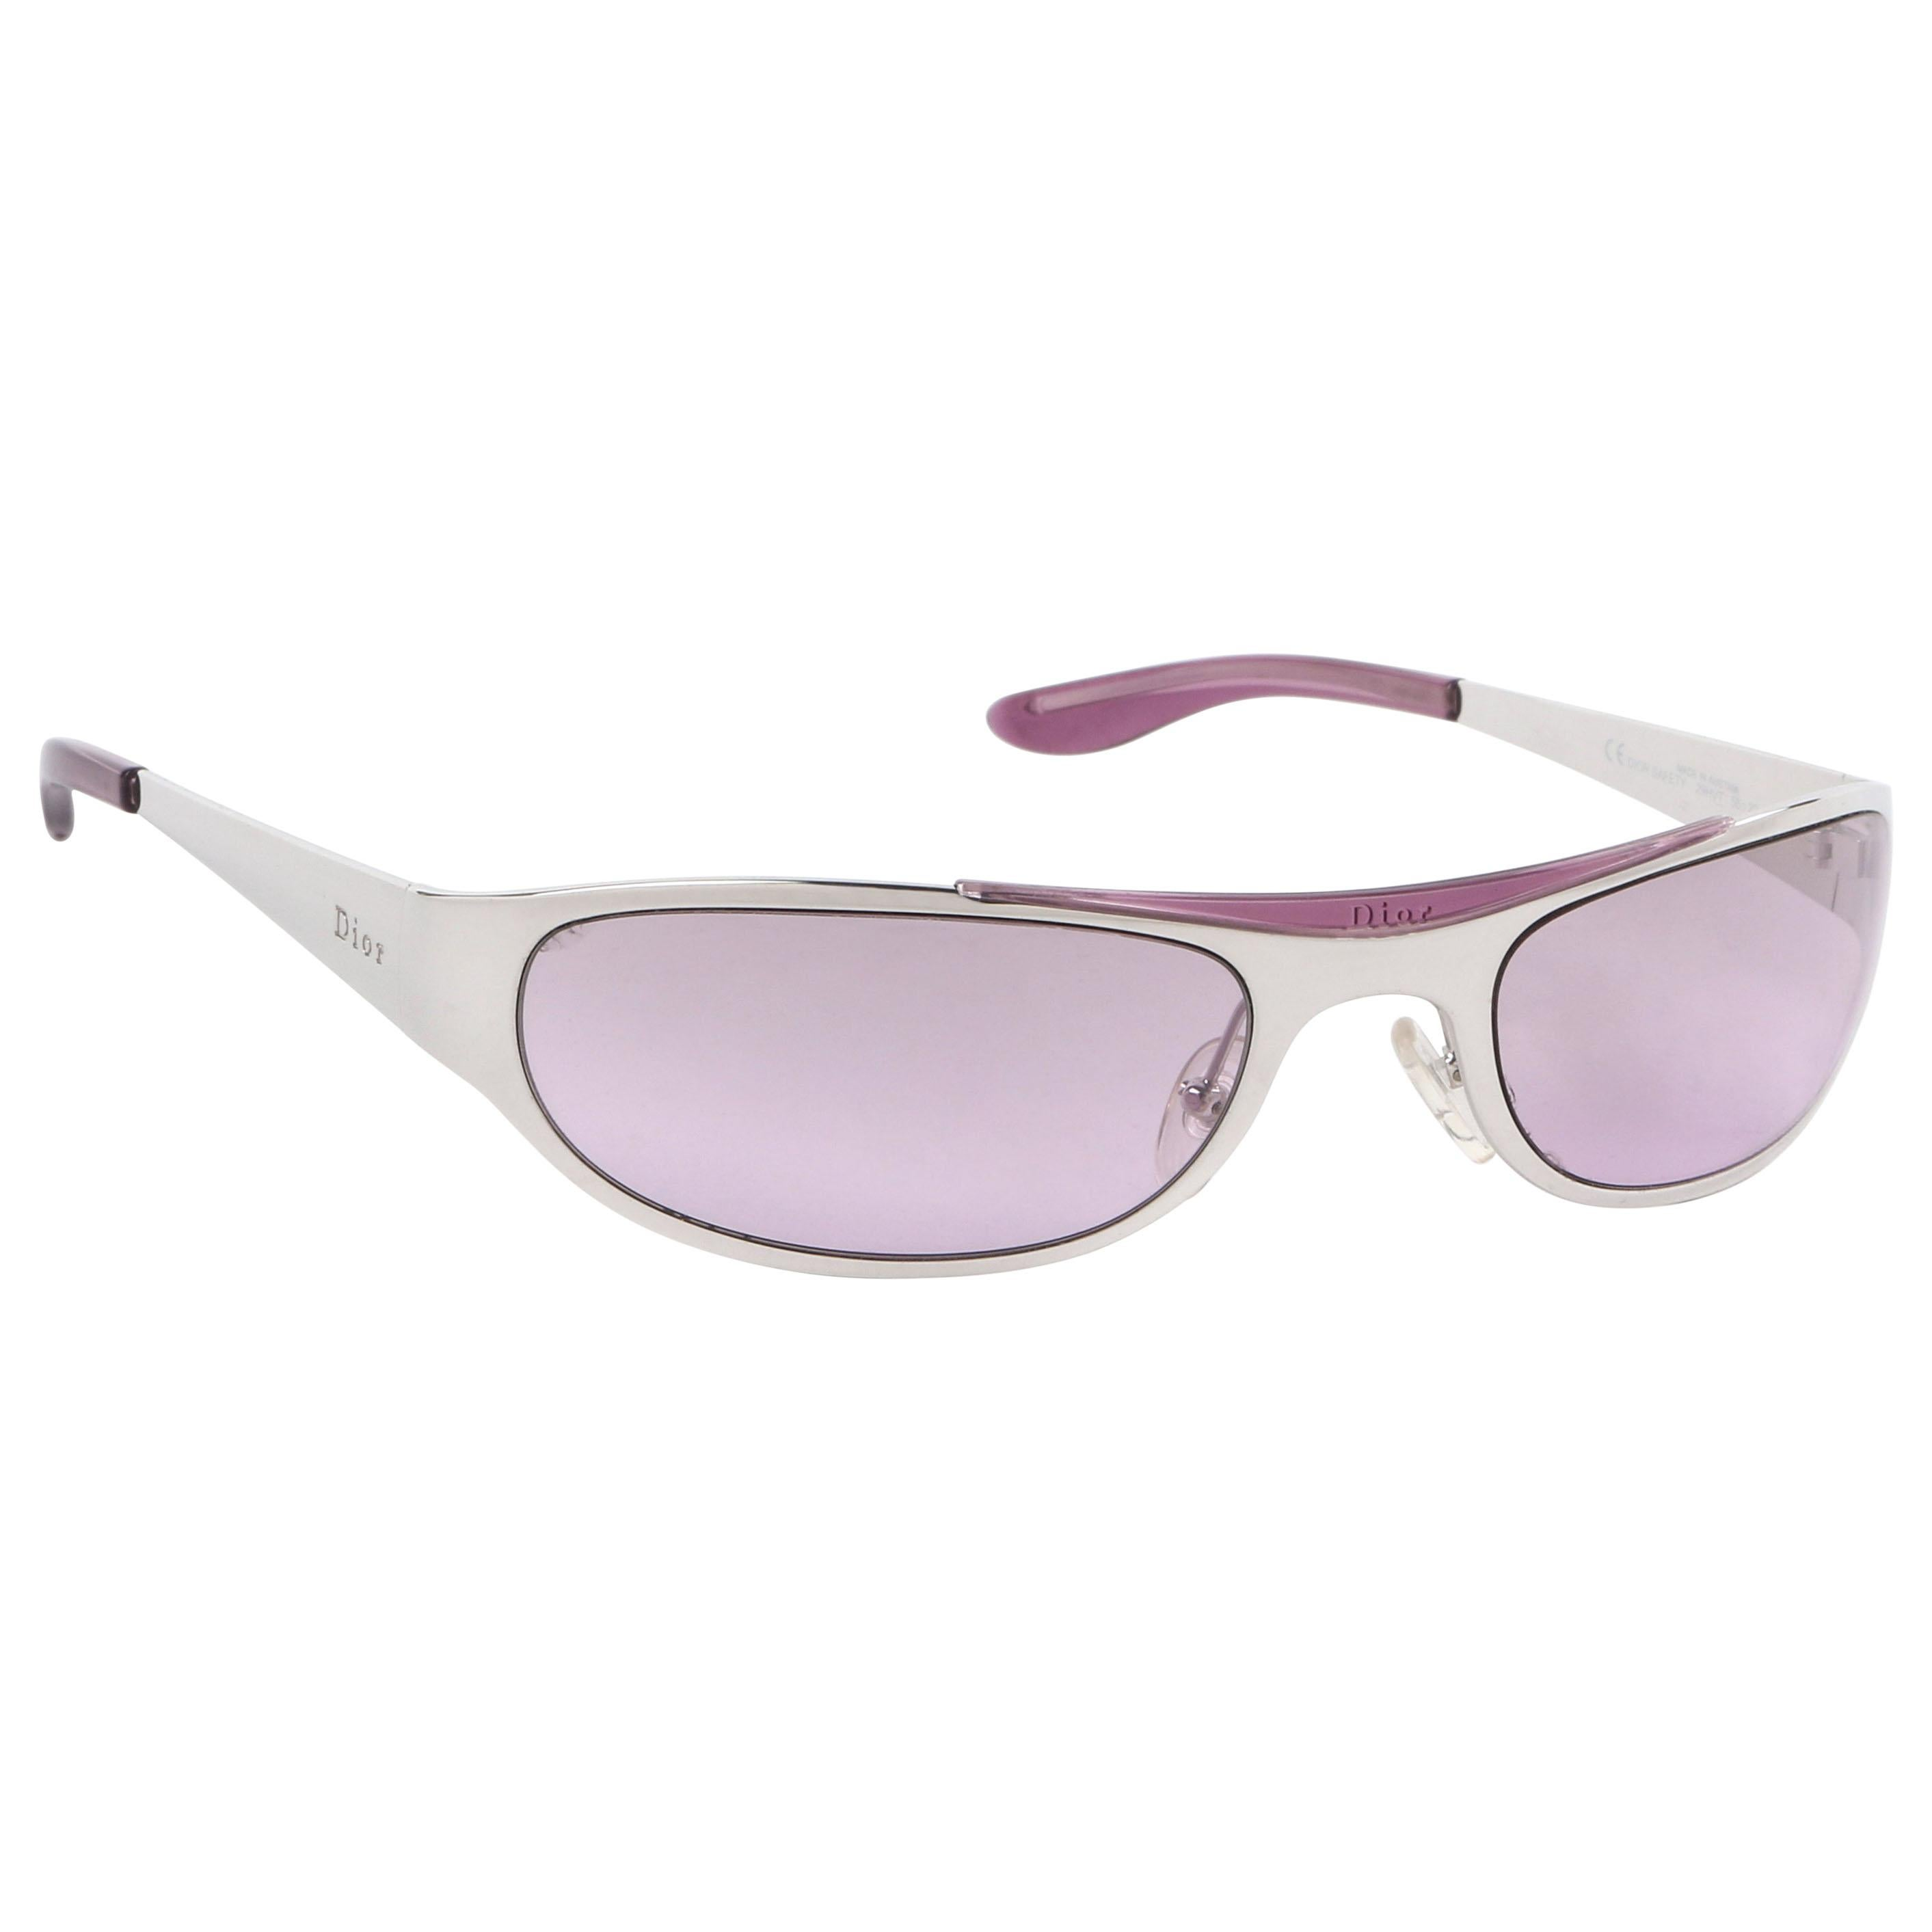 """CHRISTIAN DIOR c.1990s """"Dior Safety"""" Lavender Sport Style Wrap Sunglasses"""